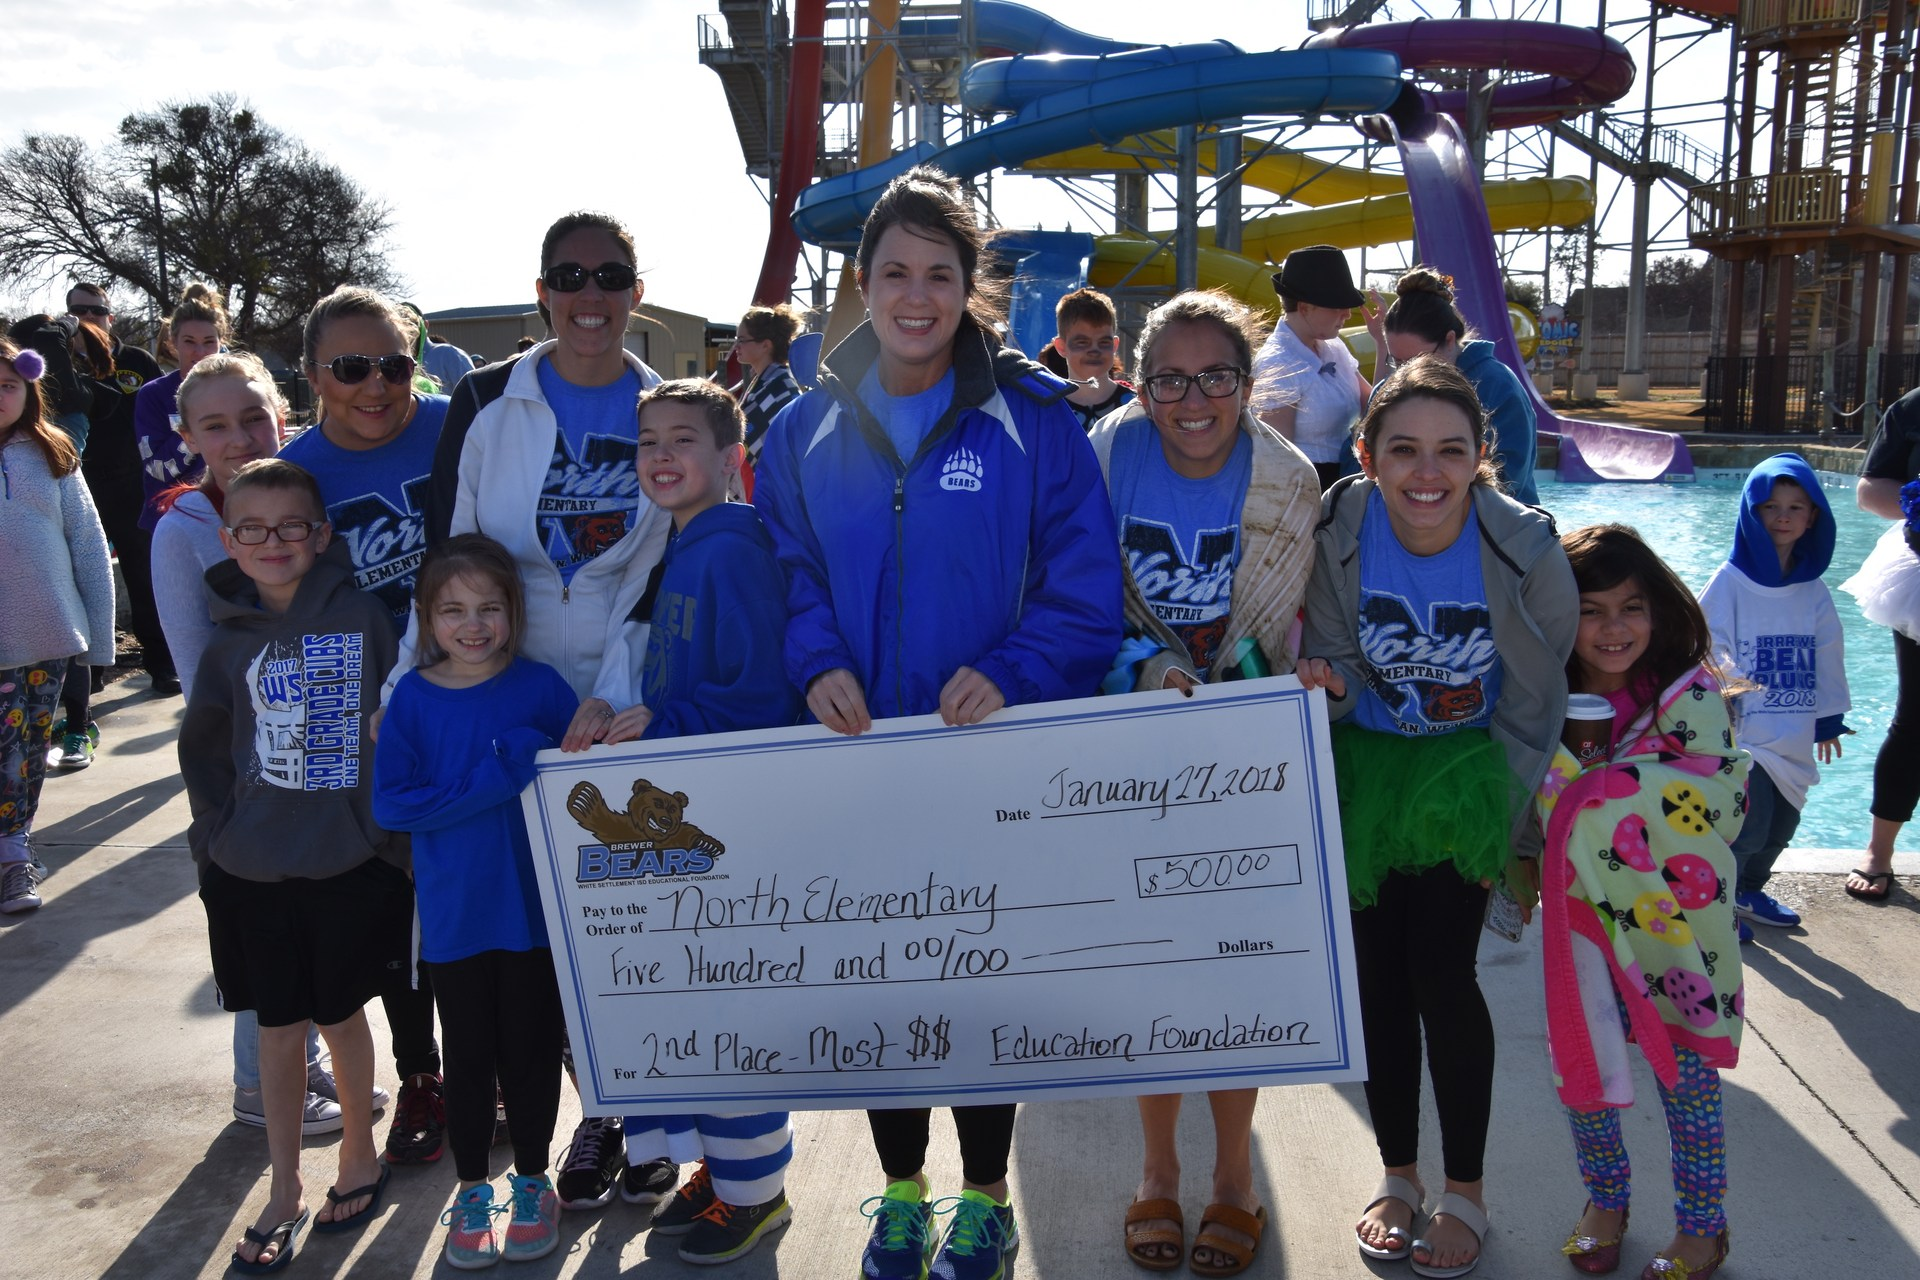 North Elementary was the 2nd place winner in the BRRRewer Bear Plunge fundraiser.